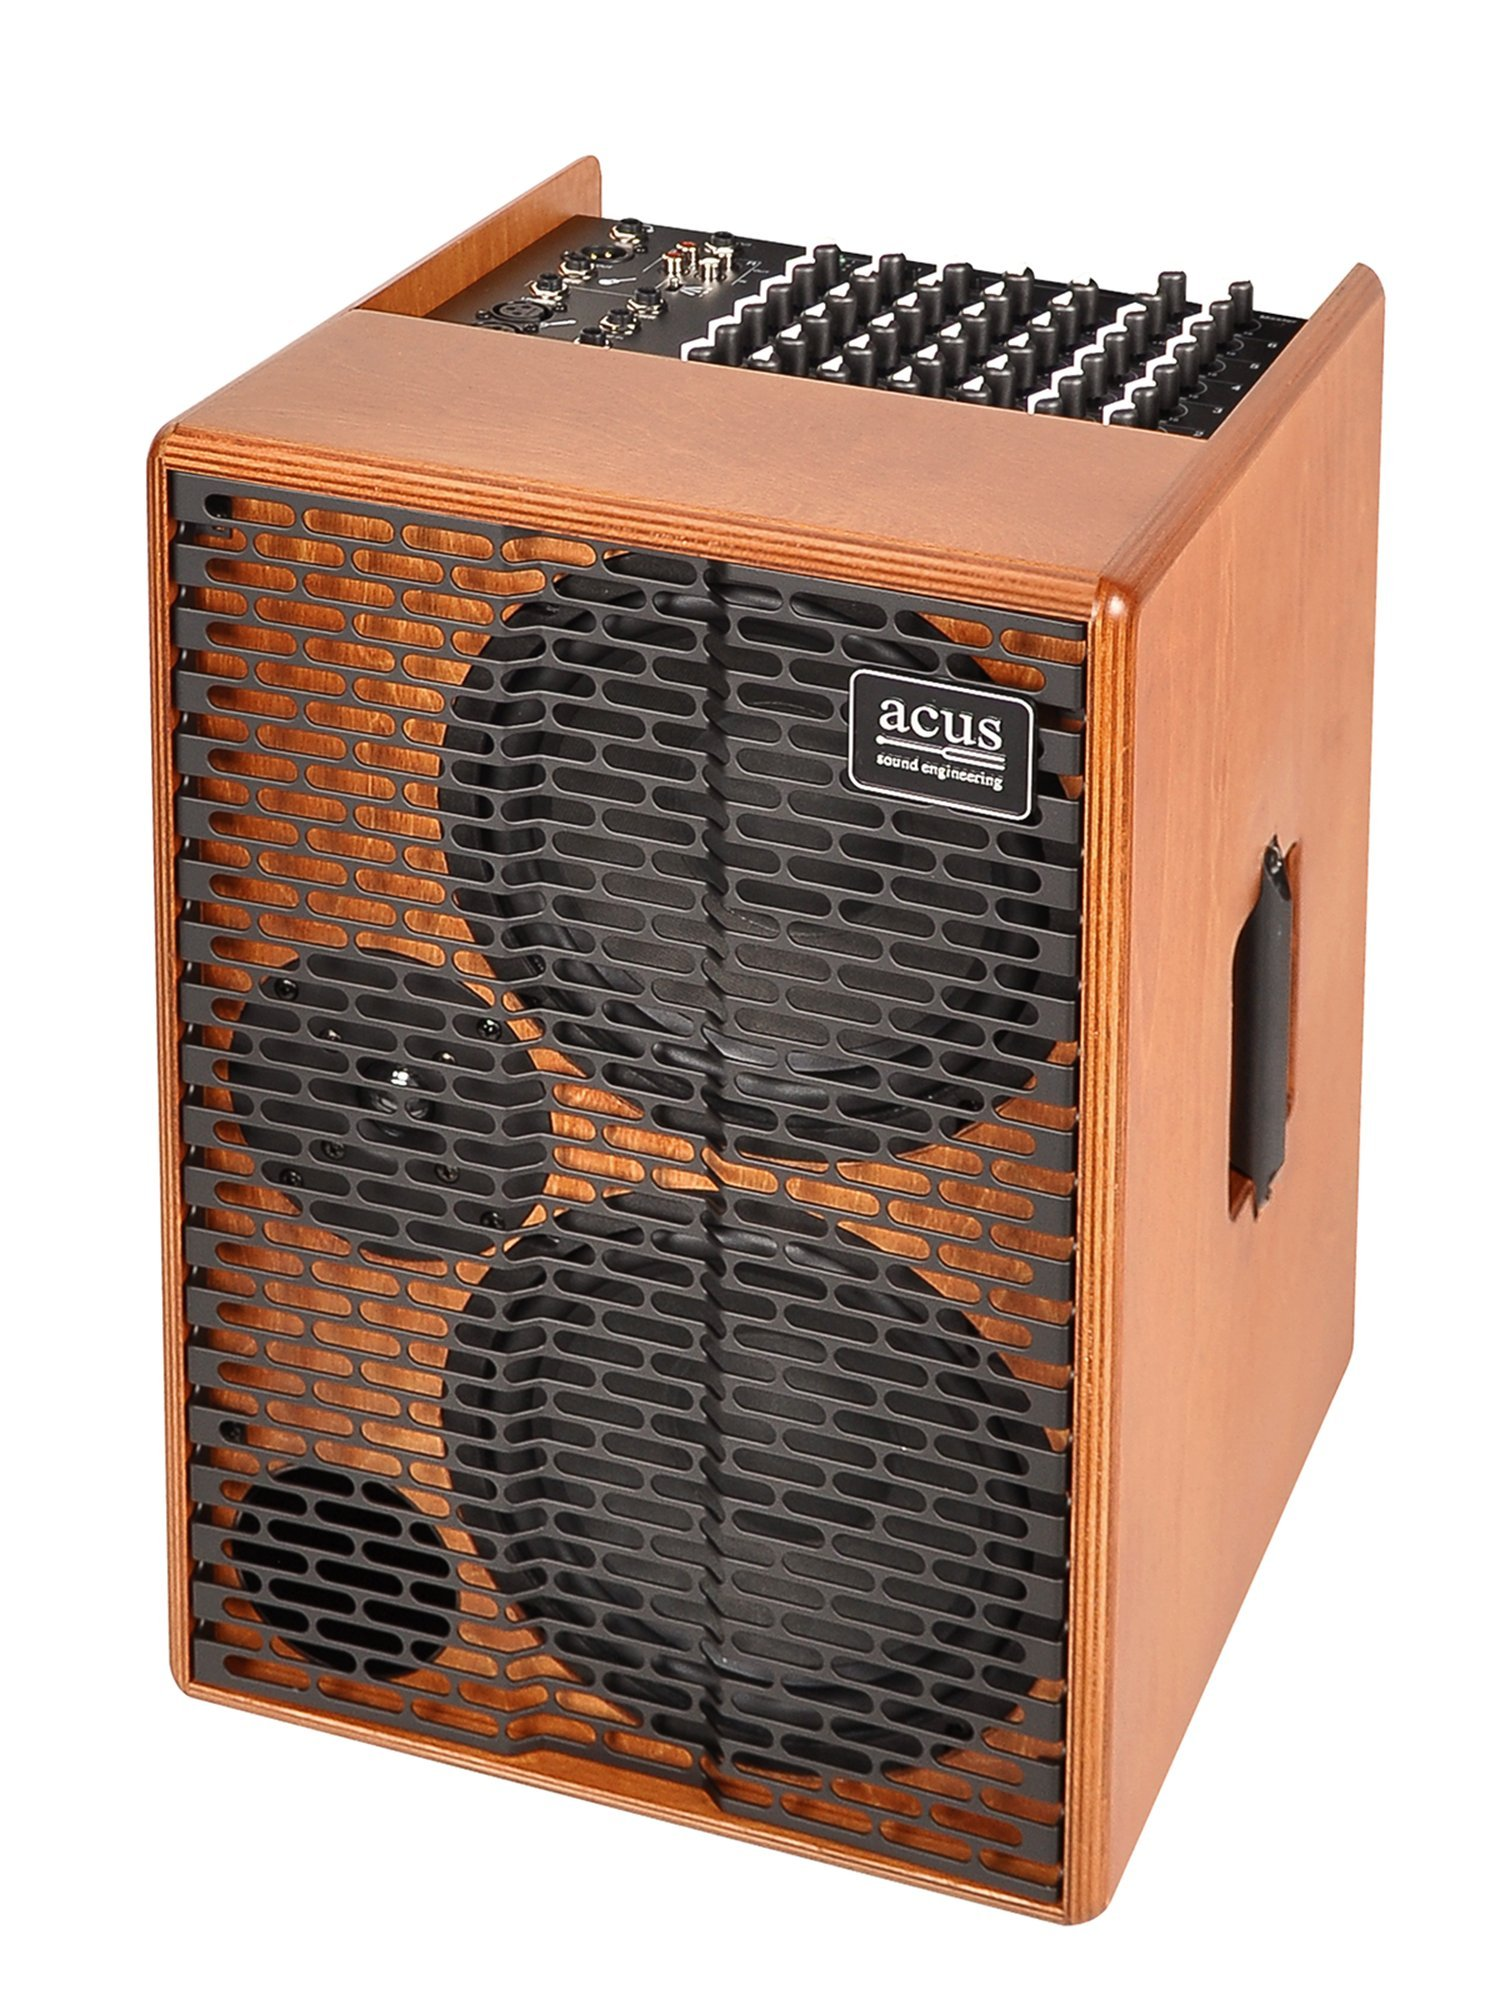 Acus Sound Engineering 03001005 OneforStrings AD Acoustic Guitar Amplifier - Wood by Acus Sound Engineering